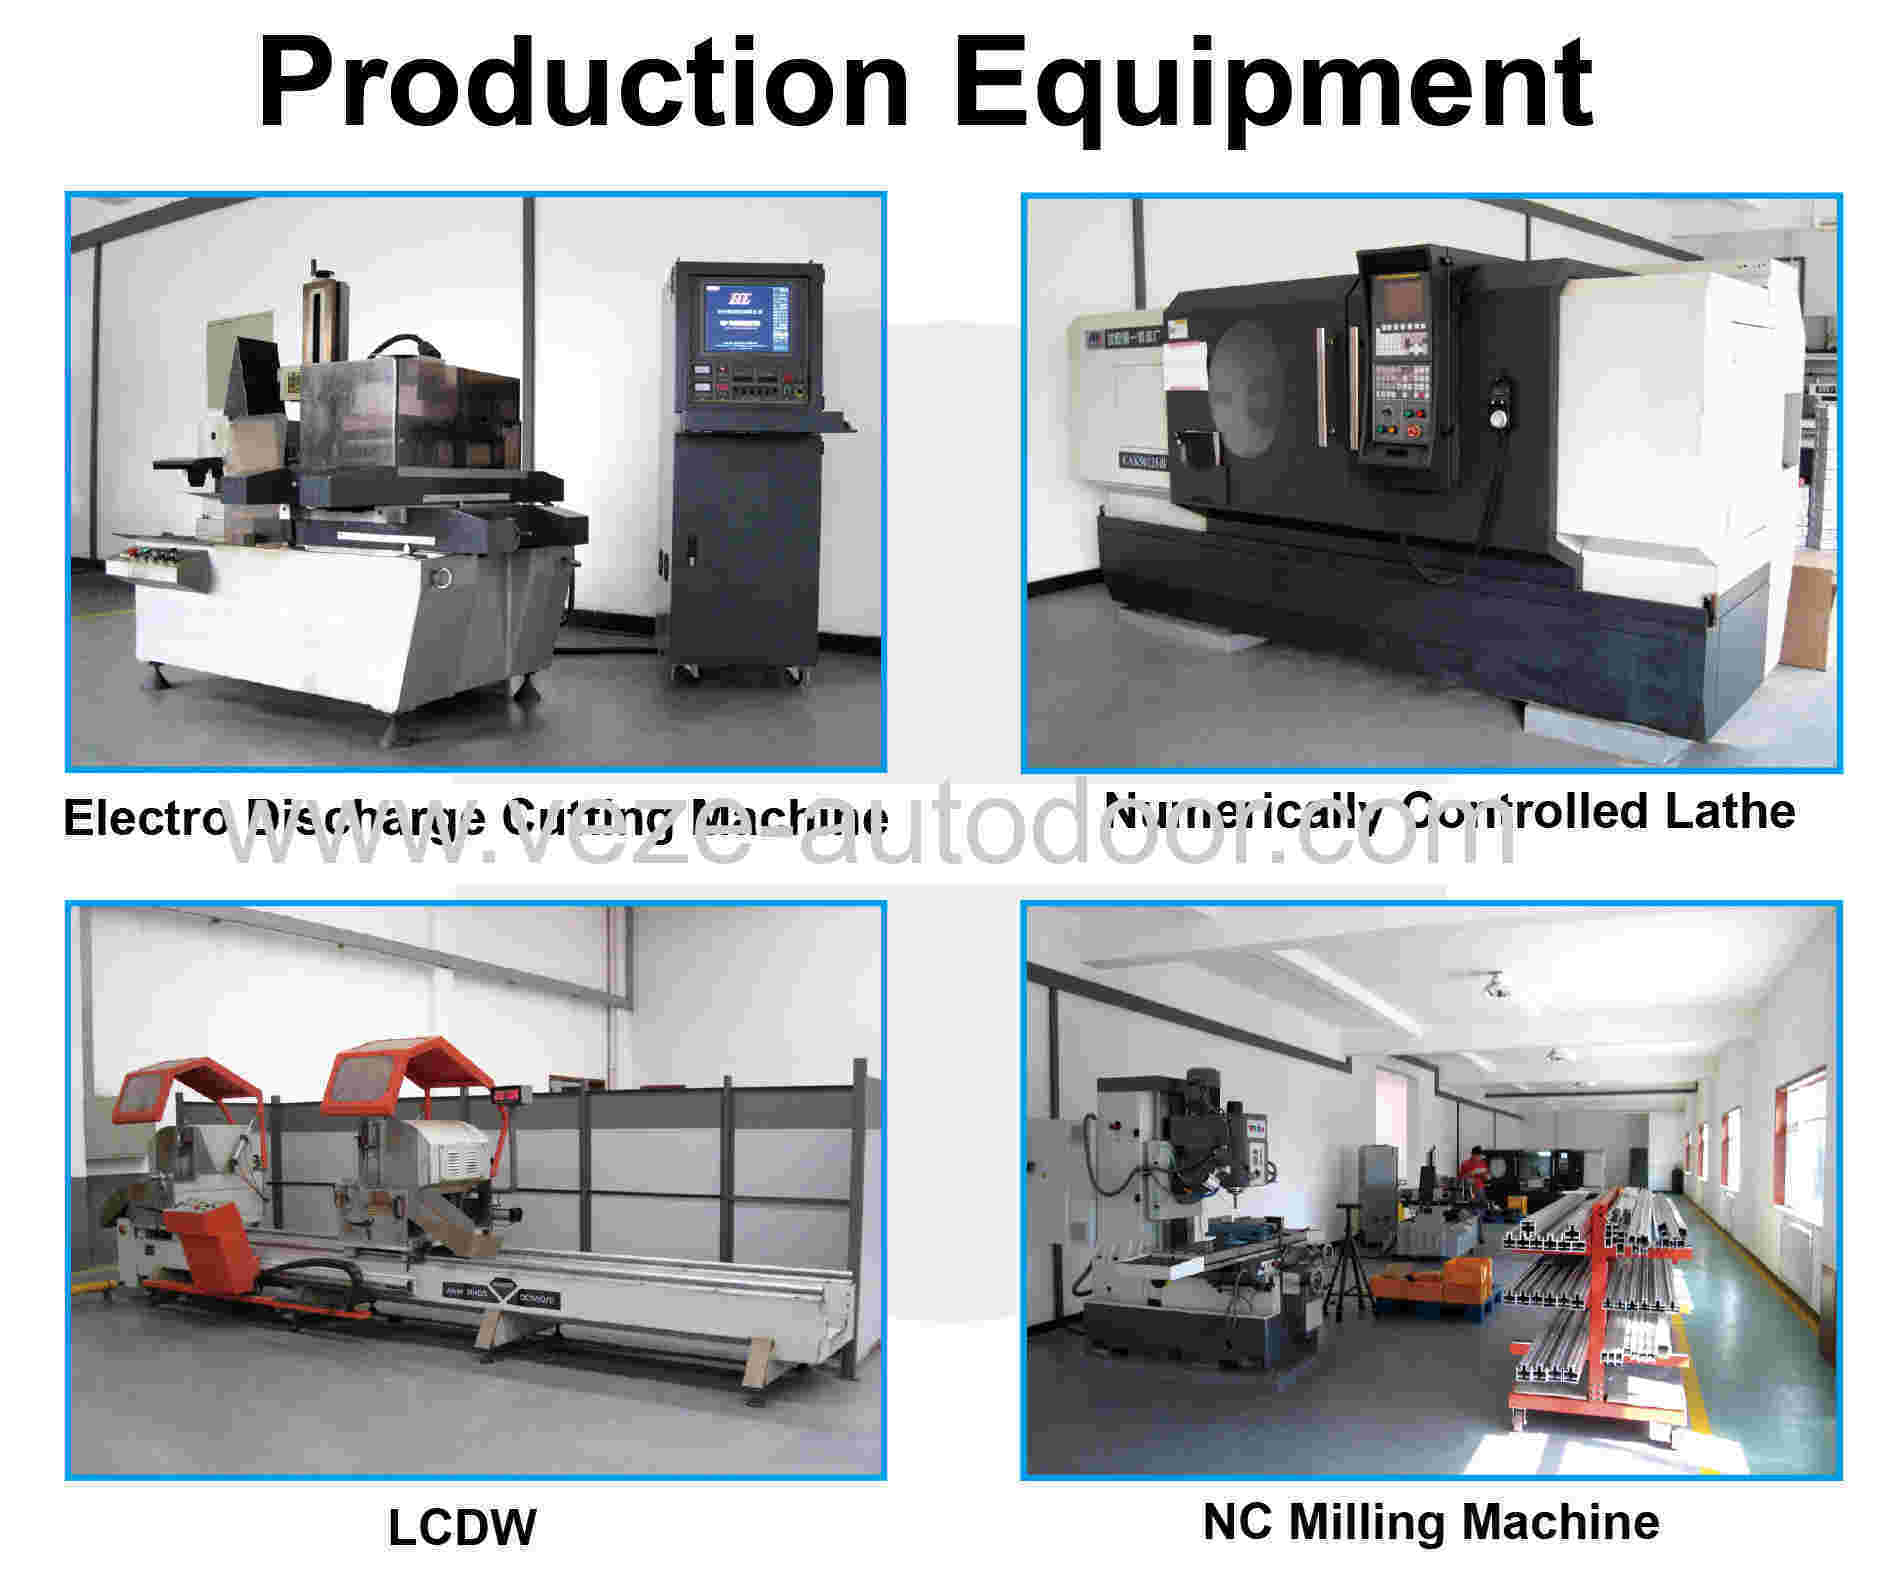 Product Equipment